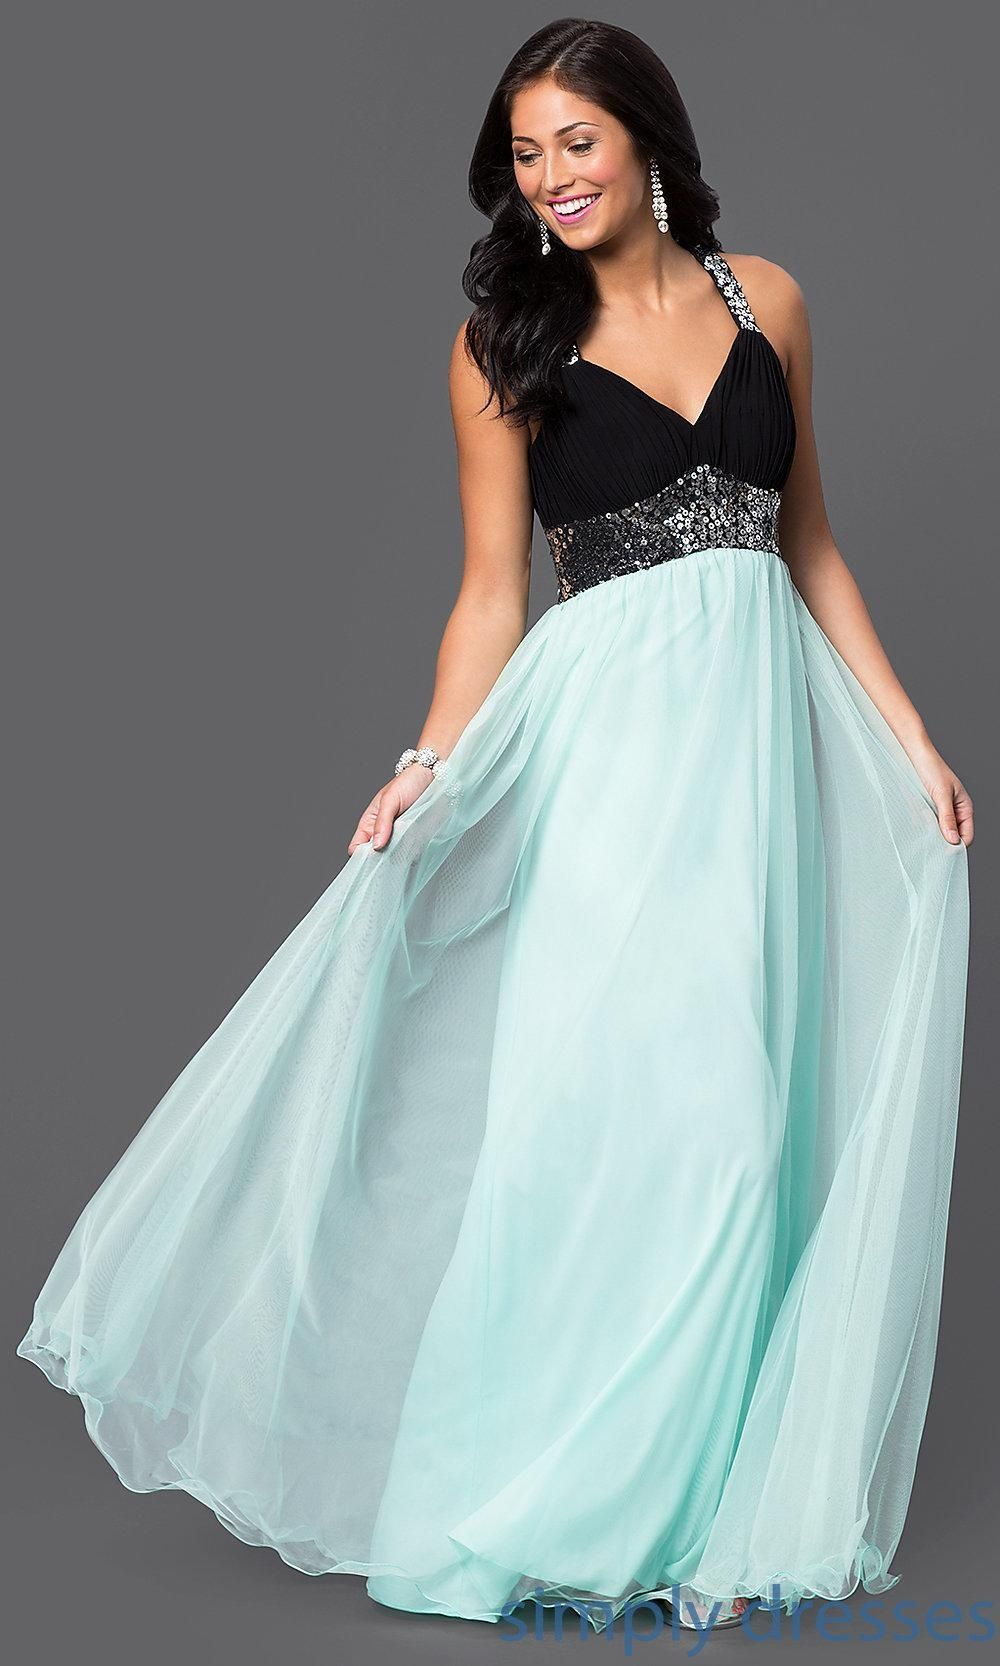 Blondie Nites Long Backless Empire Waist Prom Dress - Brought to you ...